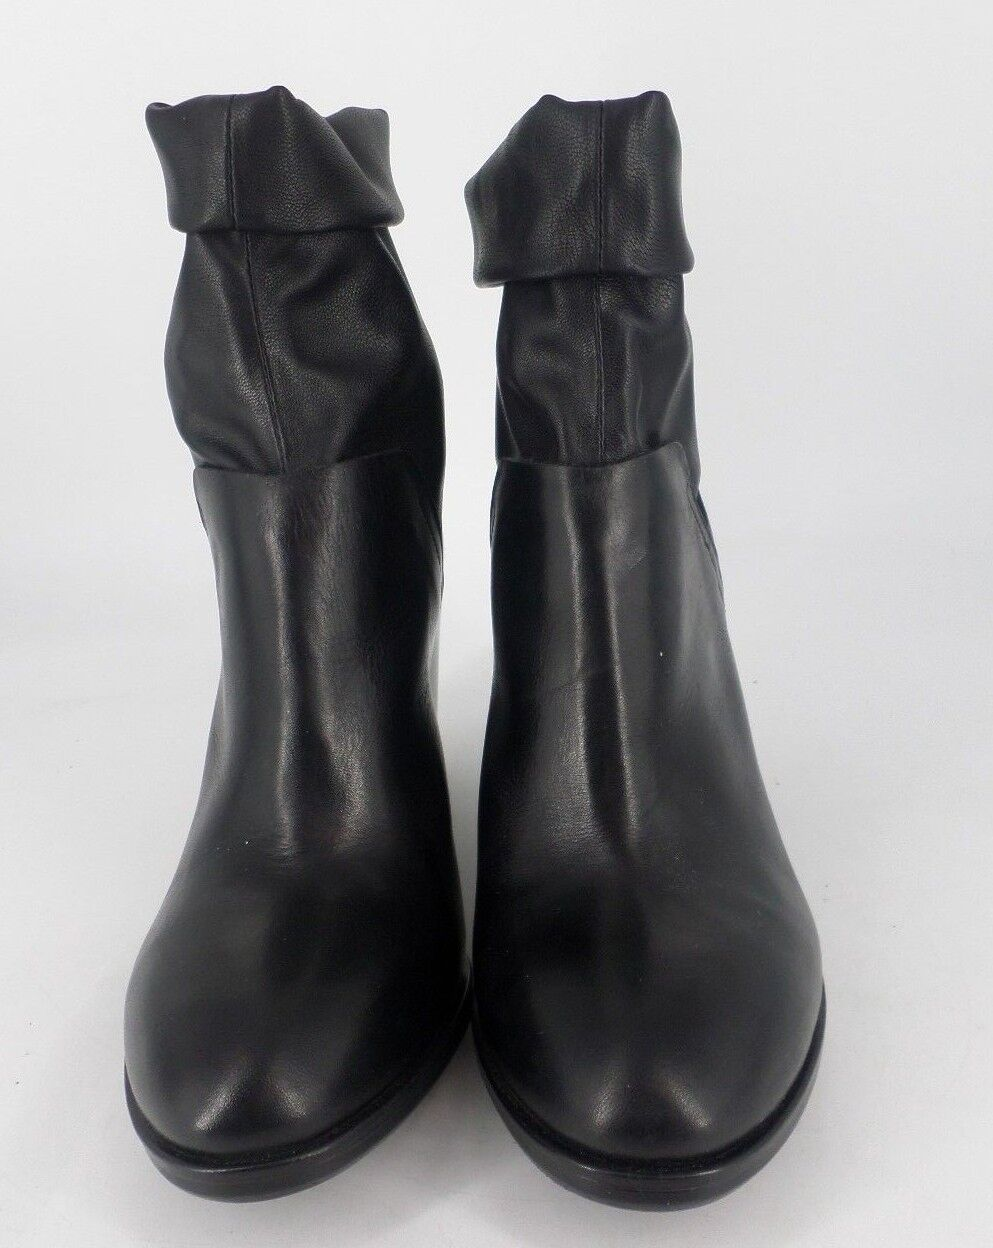 CAFE NOIR BOTTINES NOIR TALON ANKLE Stiefel BLACK SIZE NH06 UK 4 EU 37 NH06 SIZE 04 d72562